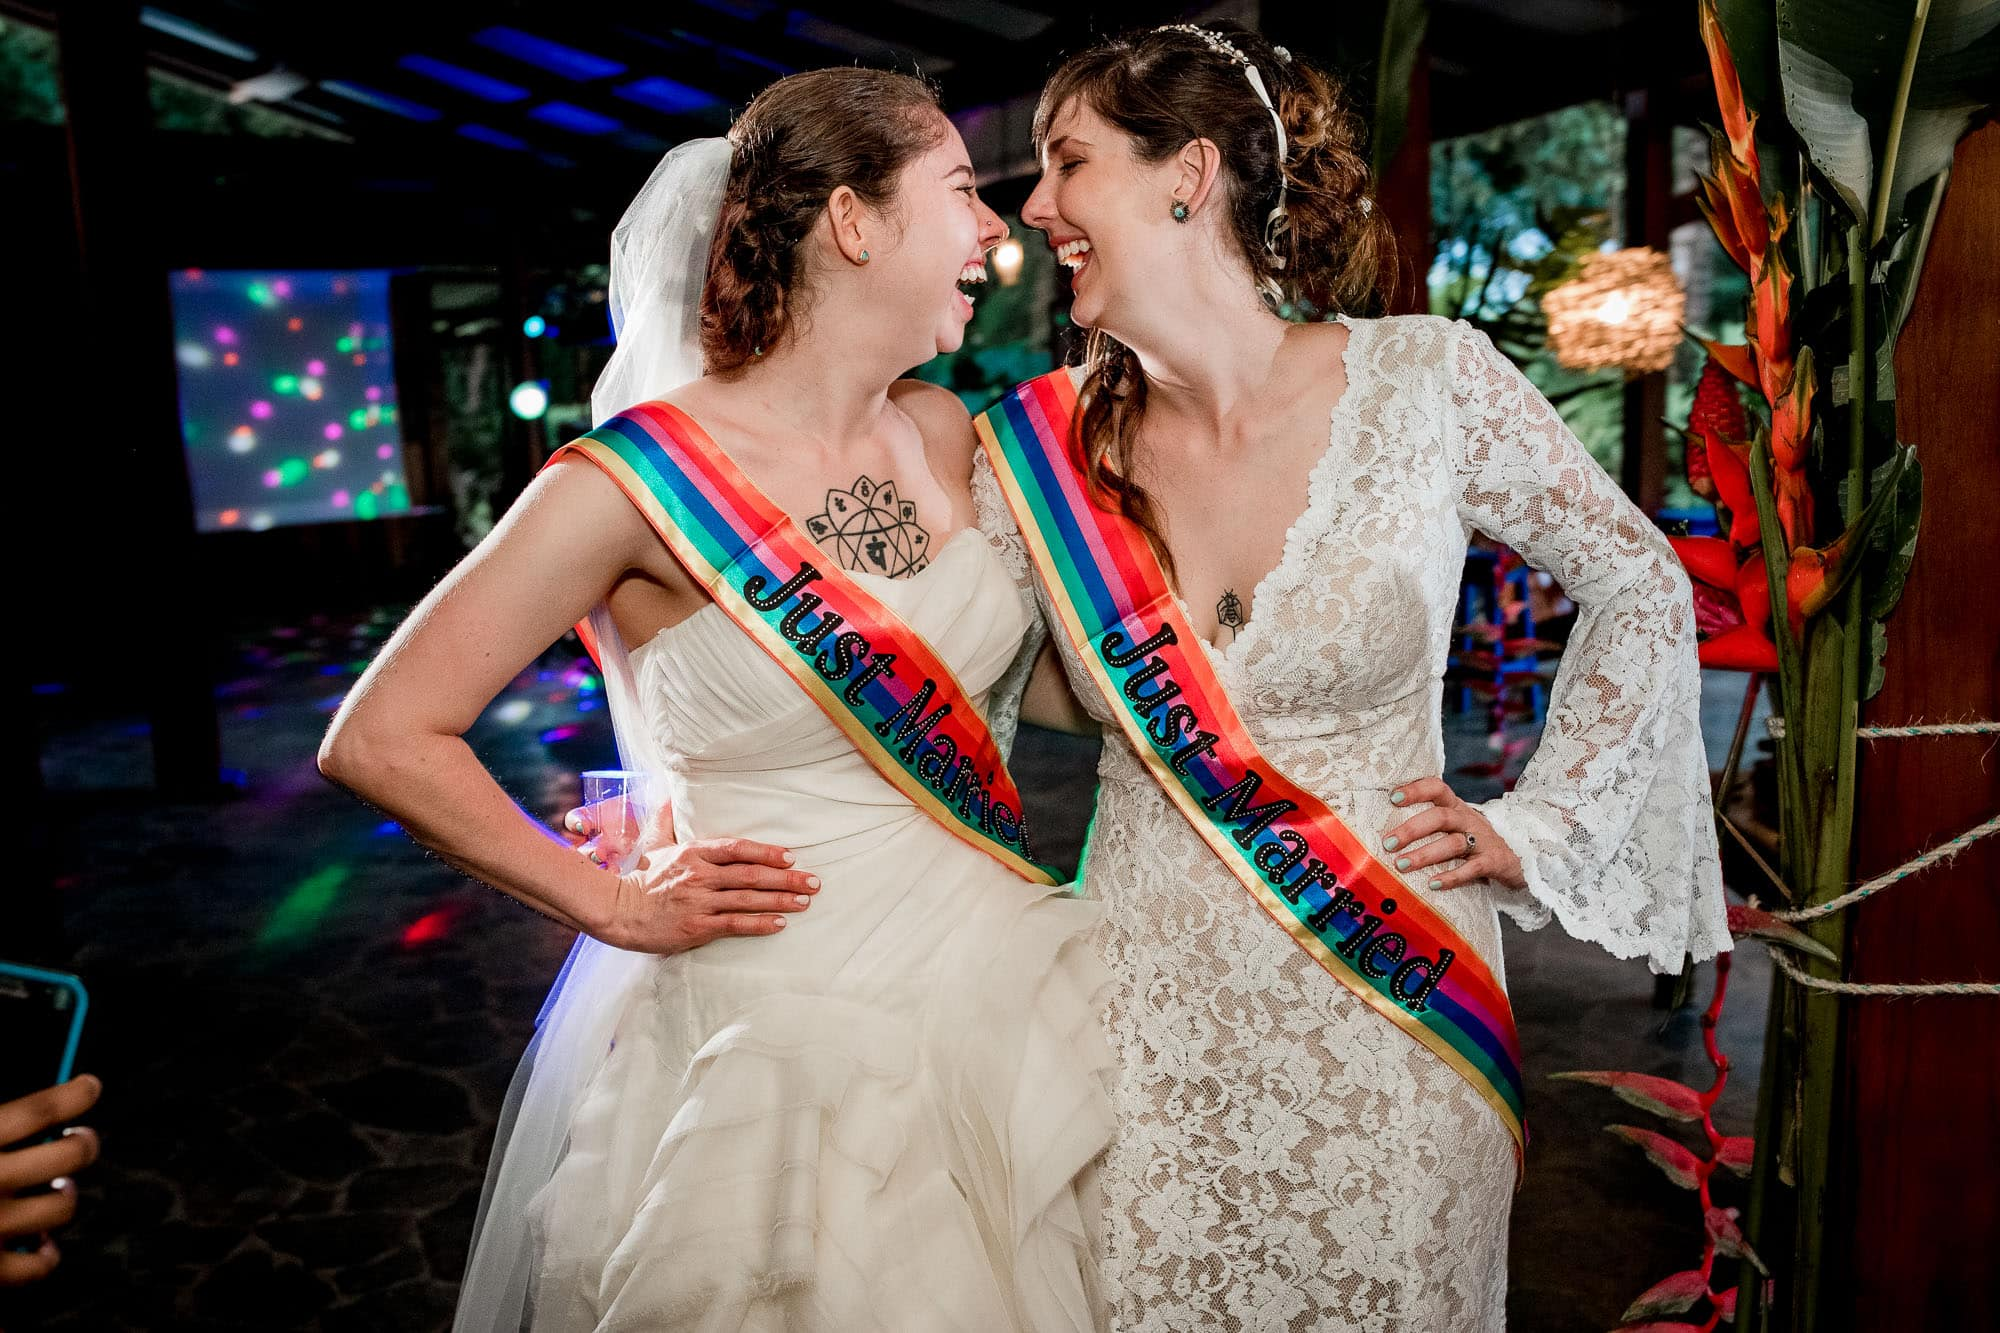 two brides with rainbow sashes